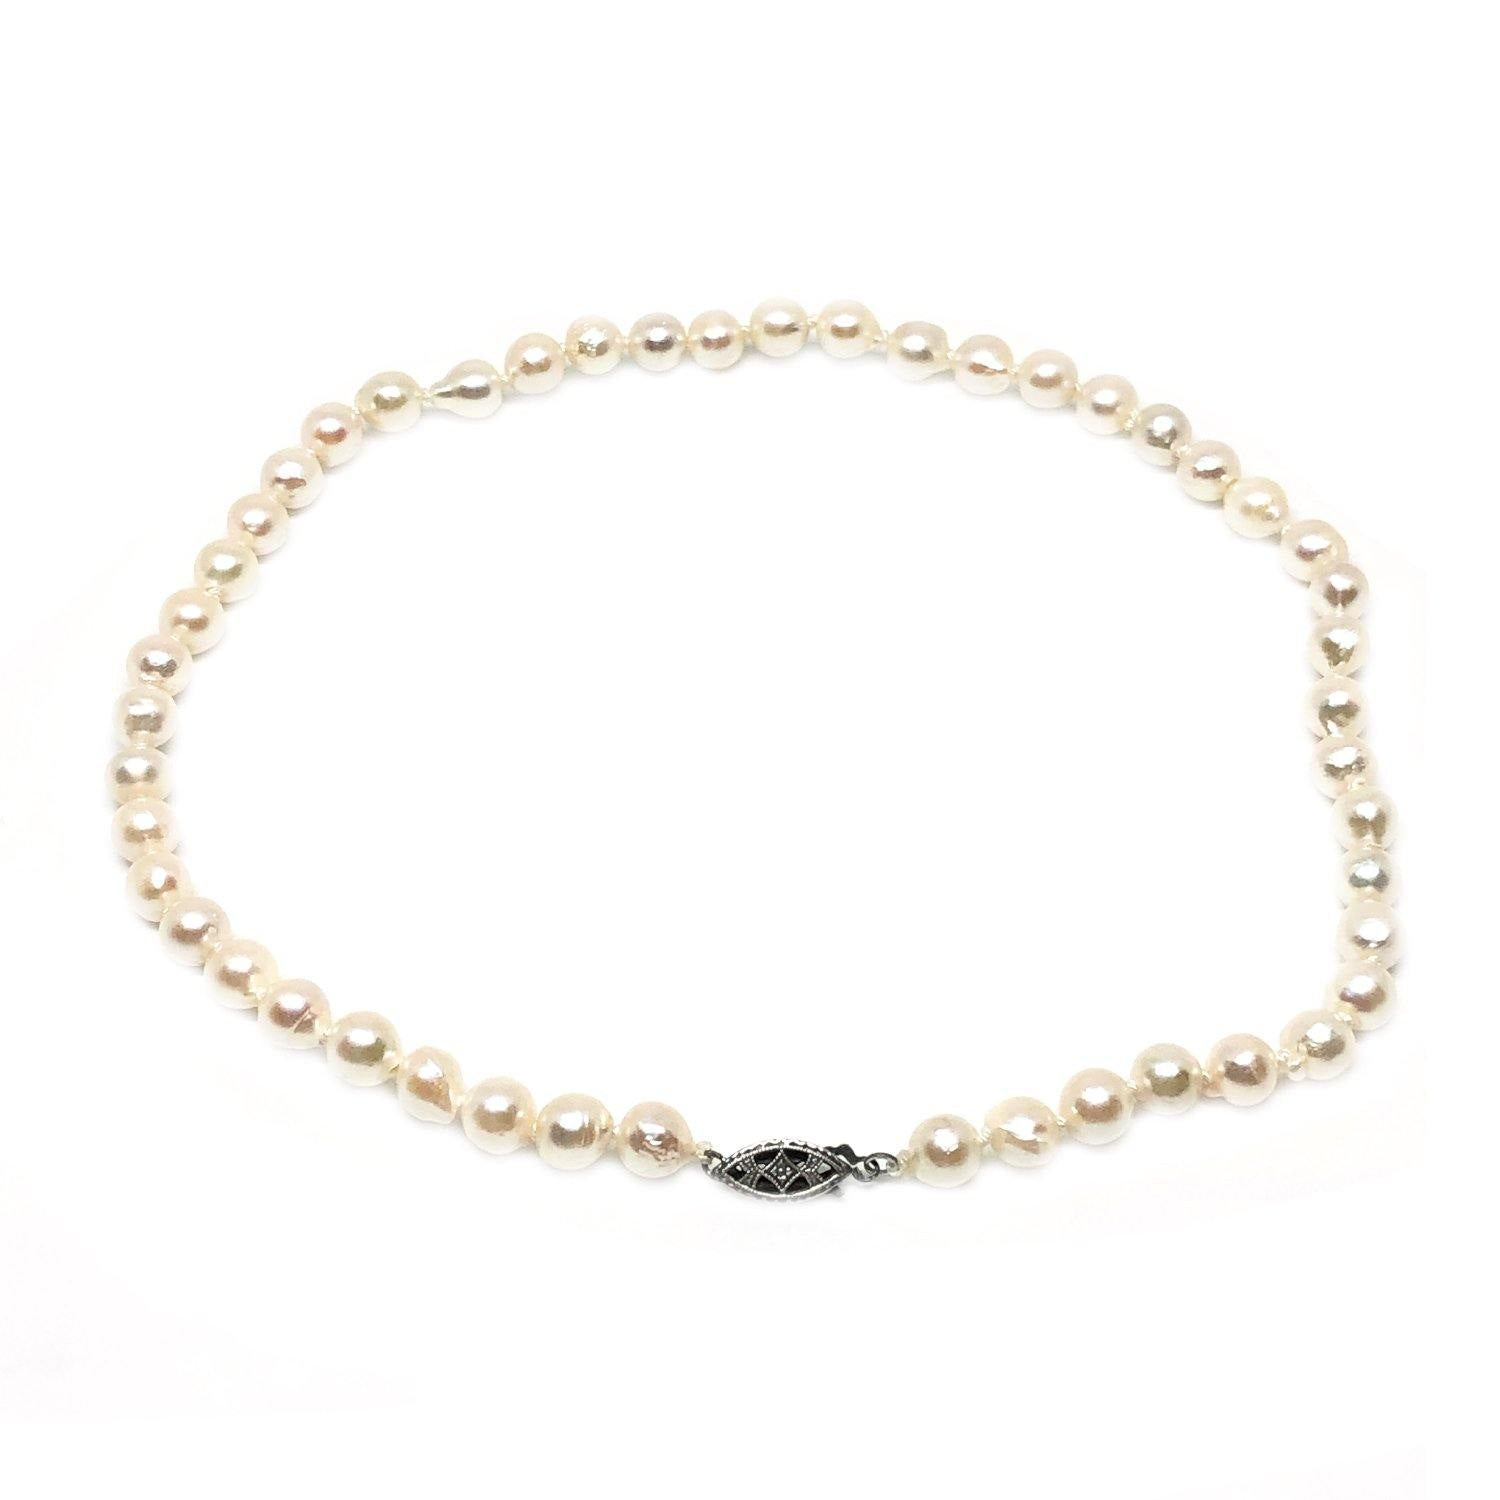 Deco Choker Japanese Saltwater Cultured Akoya Pearl Baroque Necklace - Sterling Silver 14 1/4 Inch